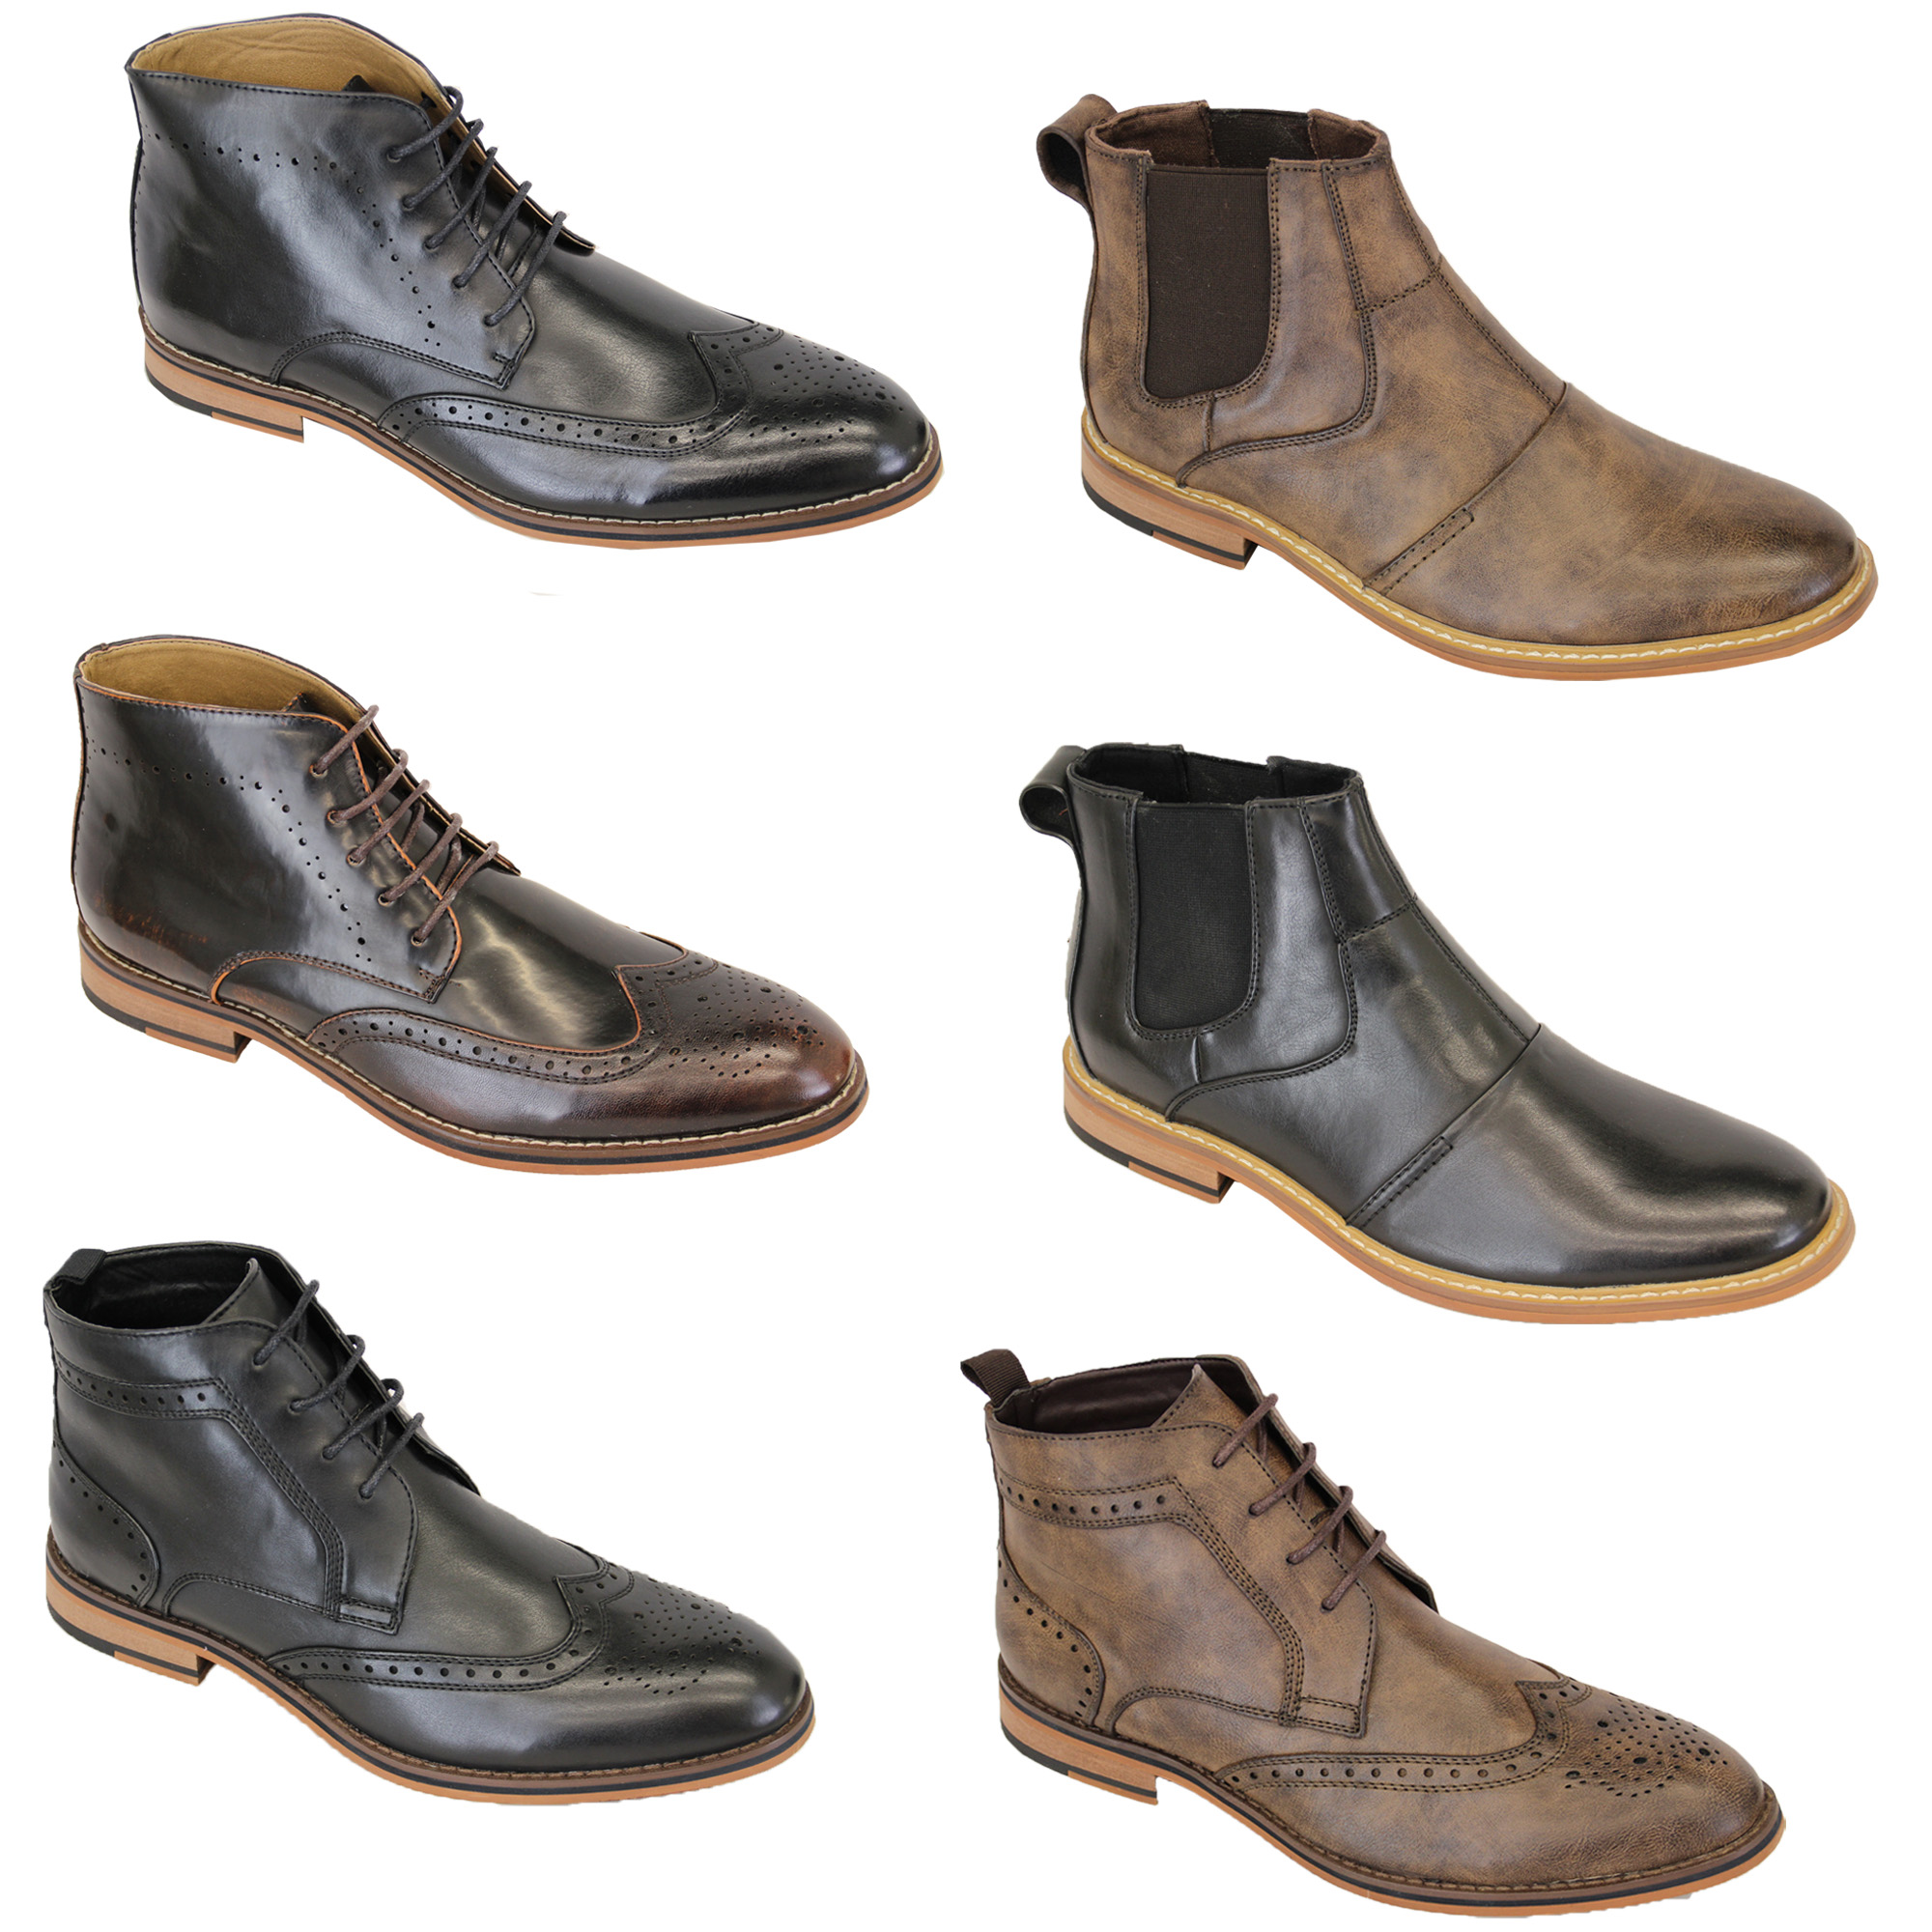 e618cd89dadc Mens Boots Voeut Brogue Chelsea Dealer Shoes High Ankle Leather Look ...